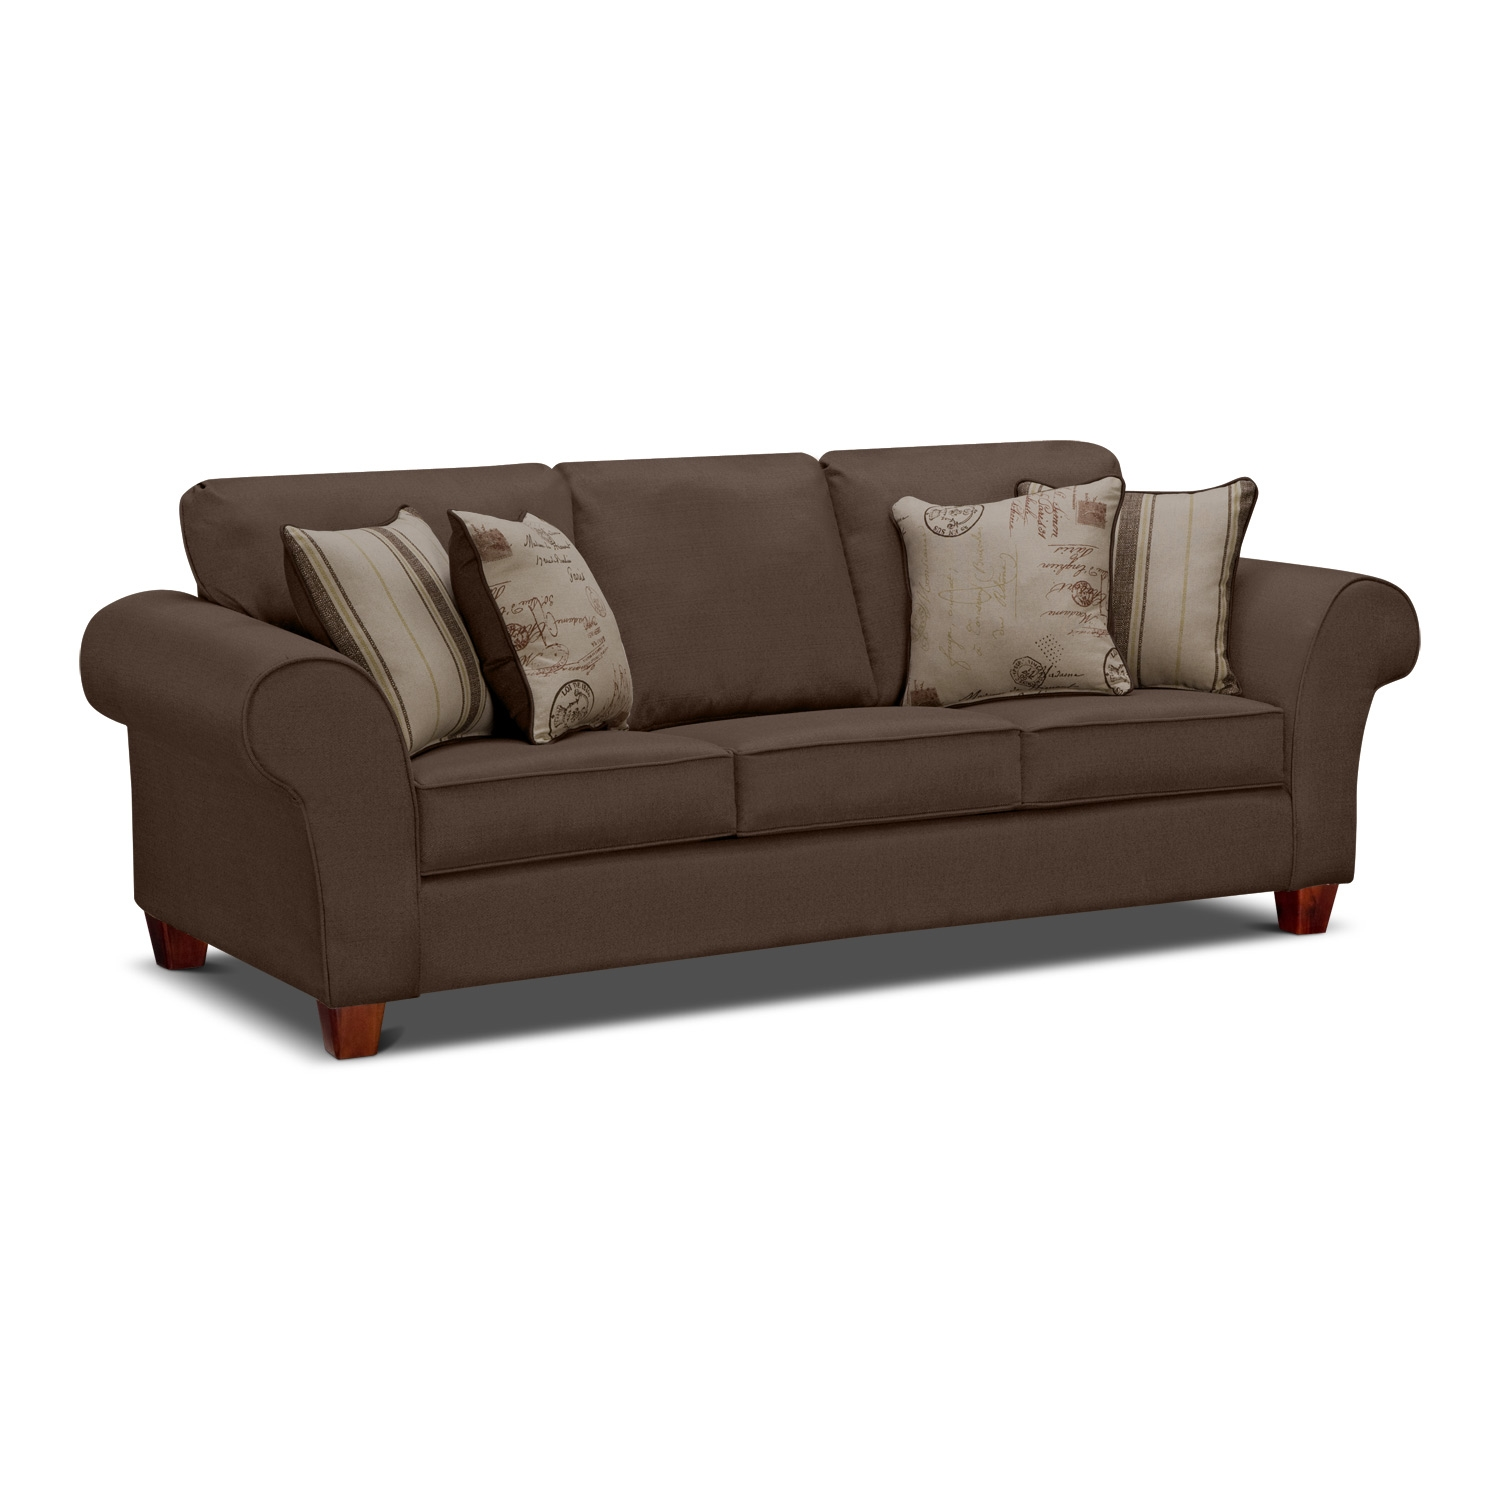 Sofas on sale ikea couch sofa ideas interior design for Furniture sofa sale